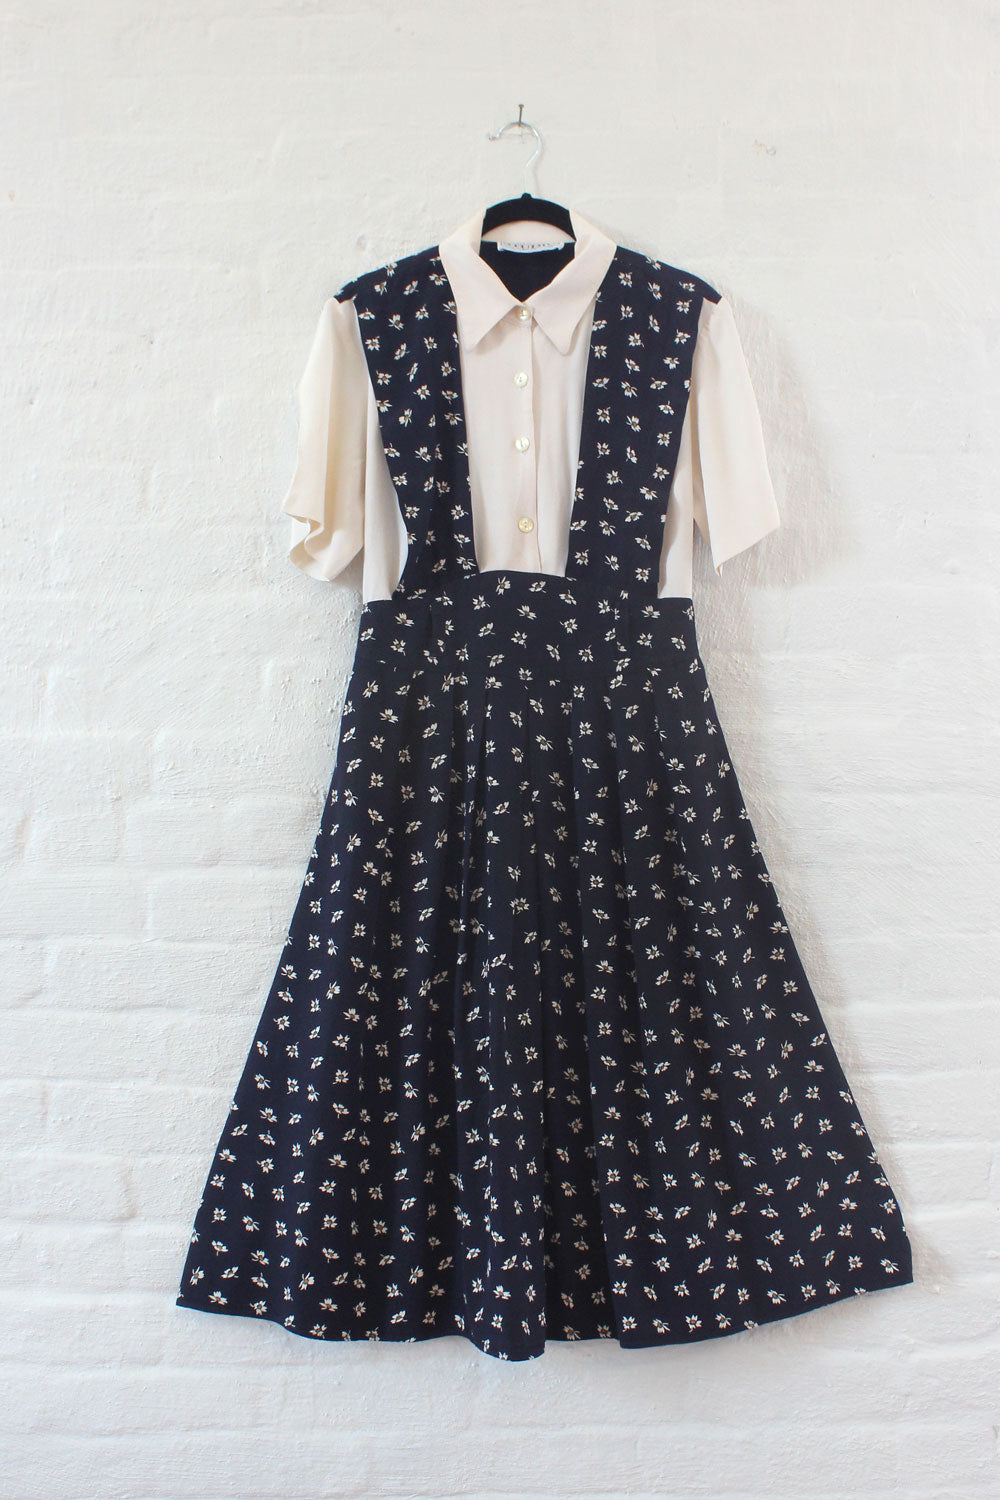 Daisy Suspender Dress M/L